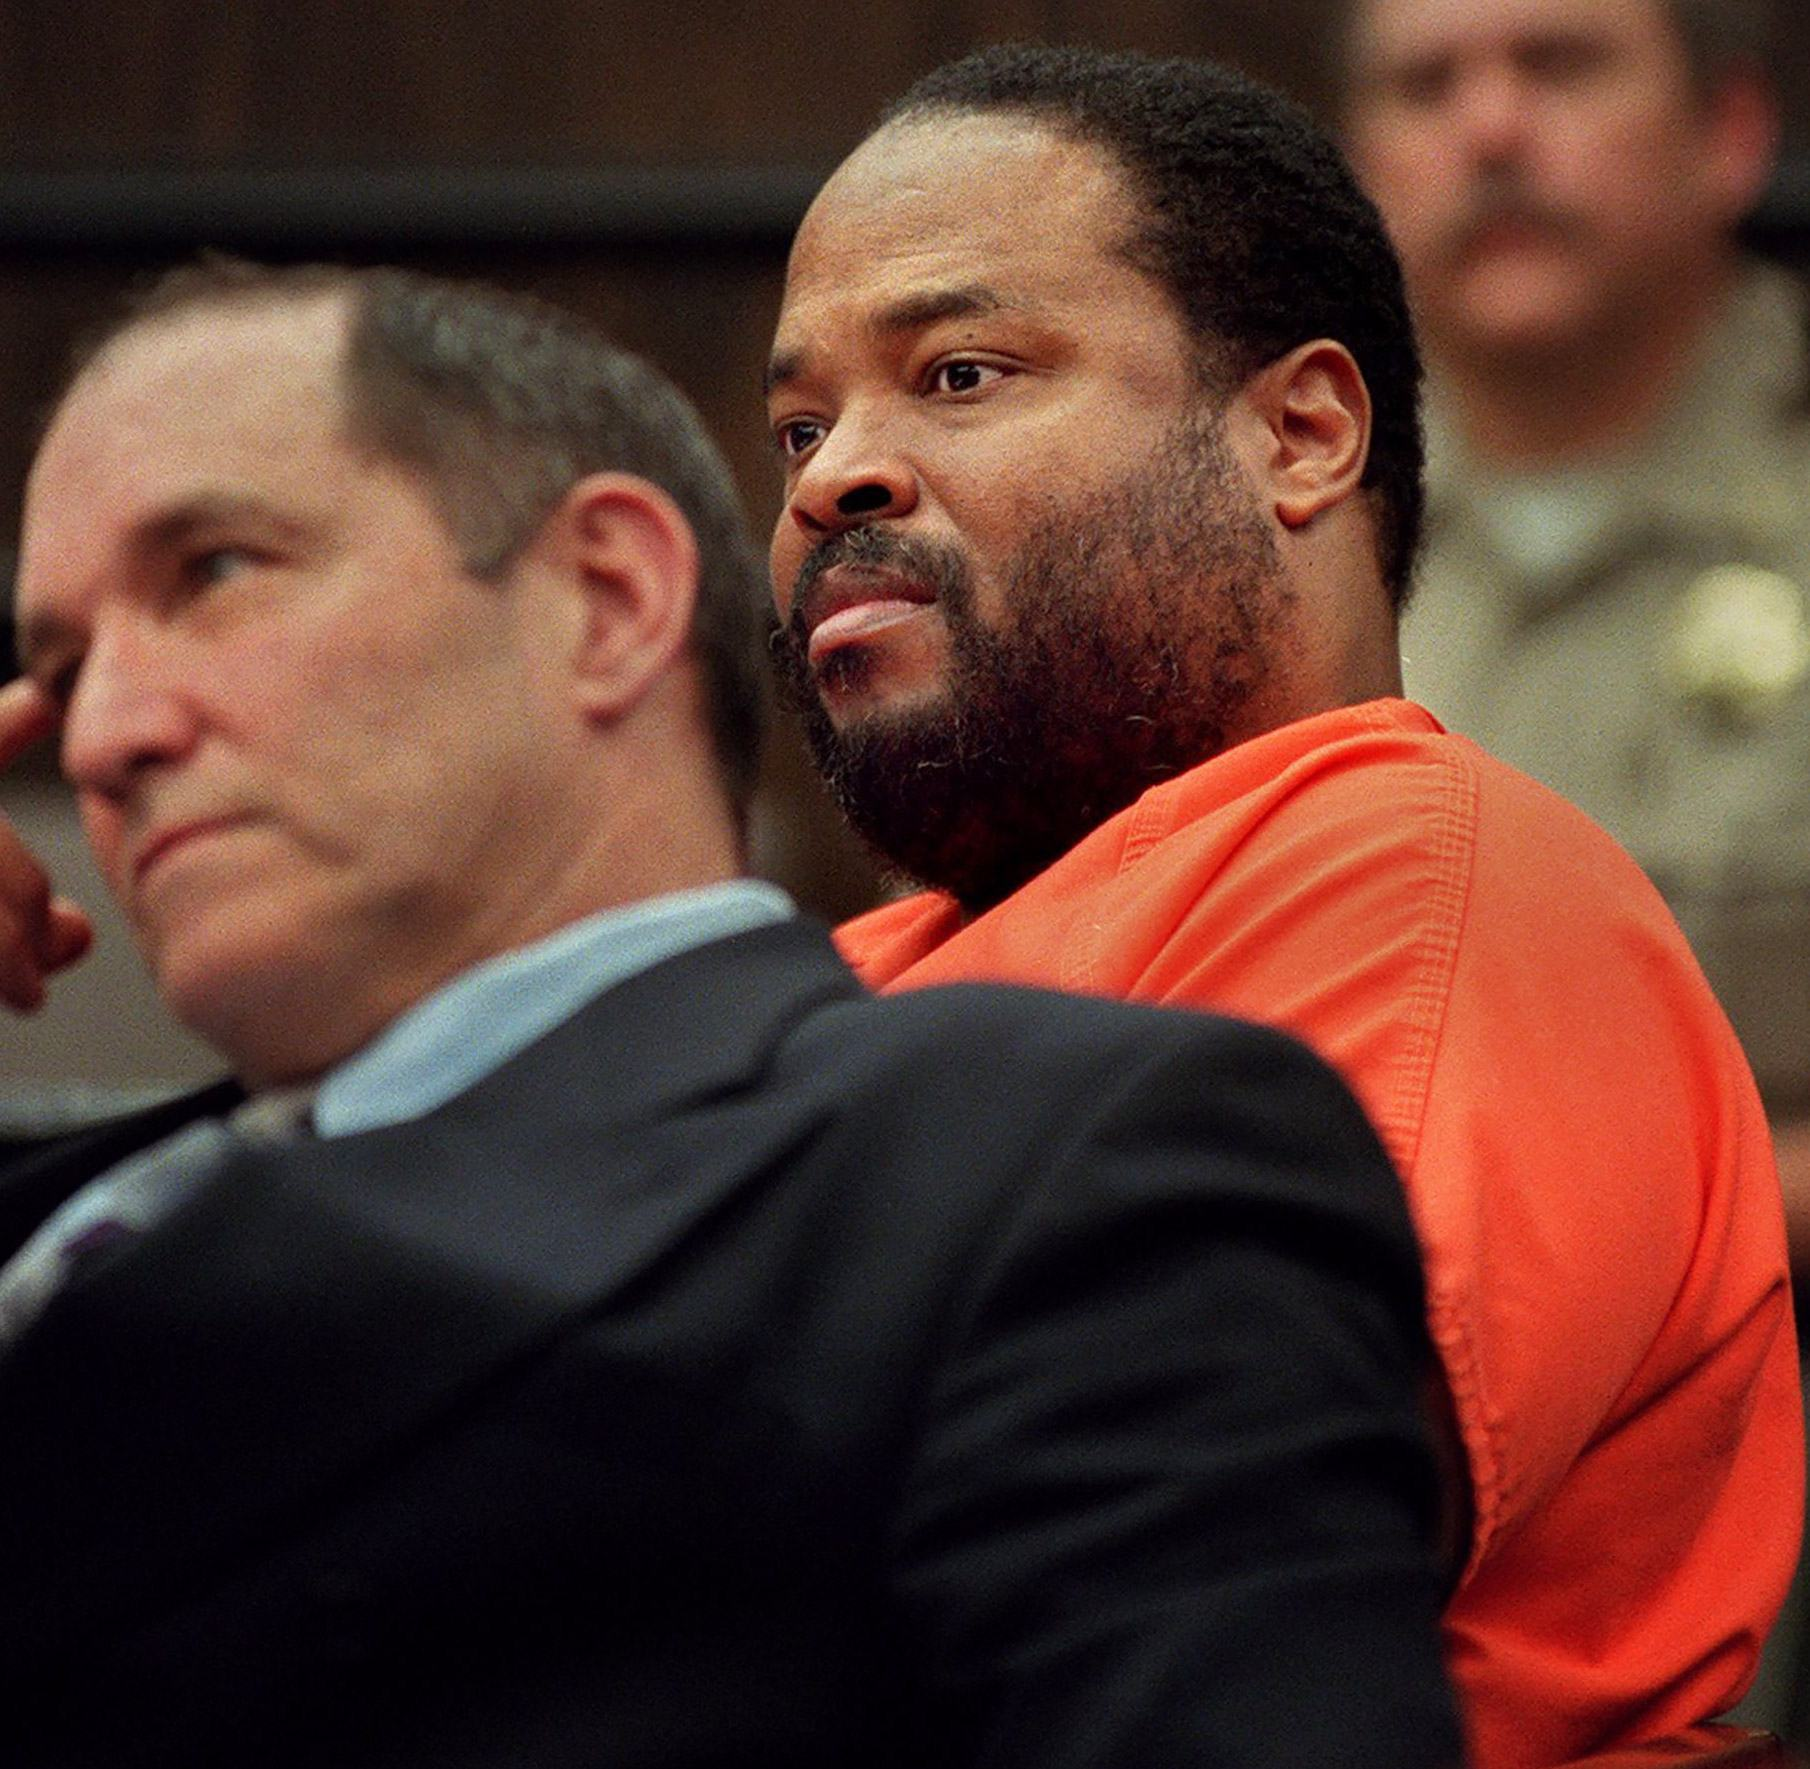 2. Robert Rozier 10 Sports Stars Who Committed Terrible Crimes